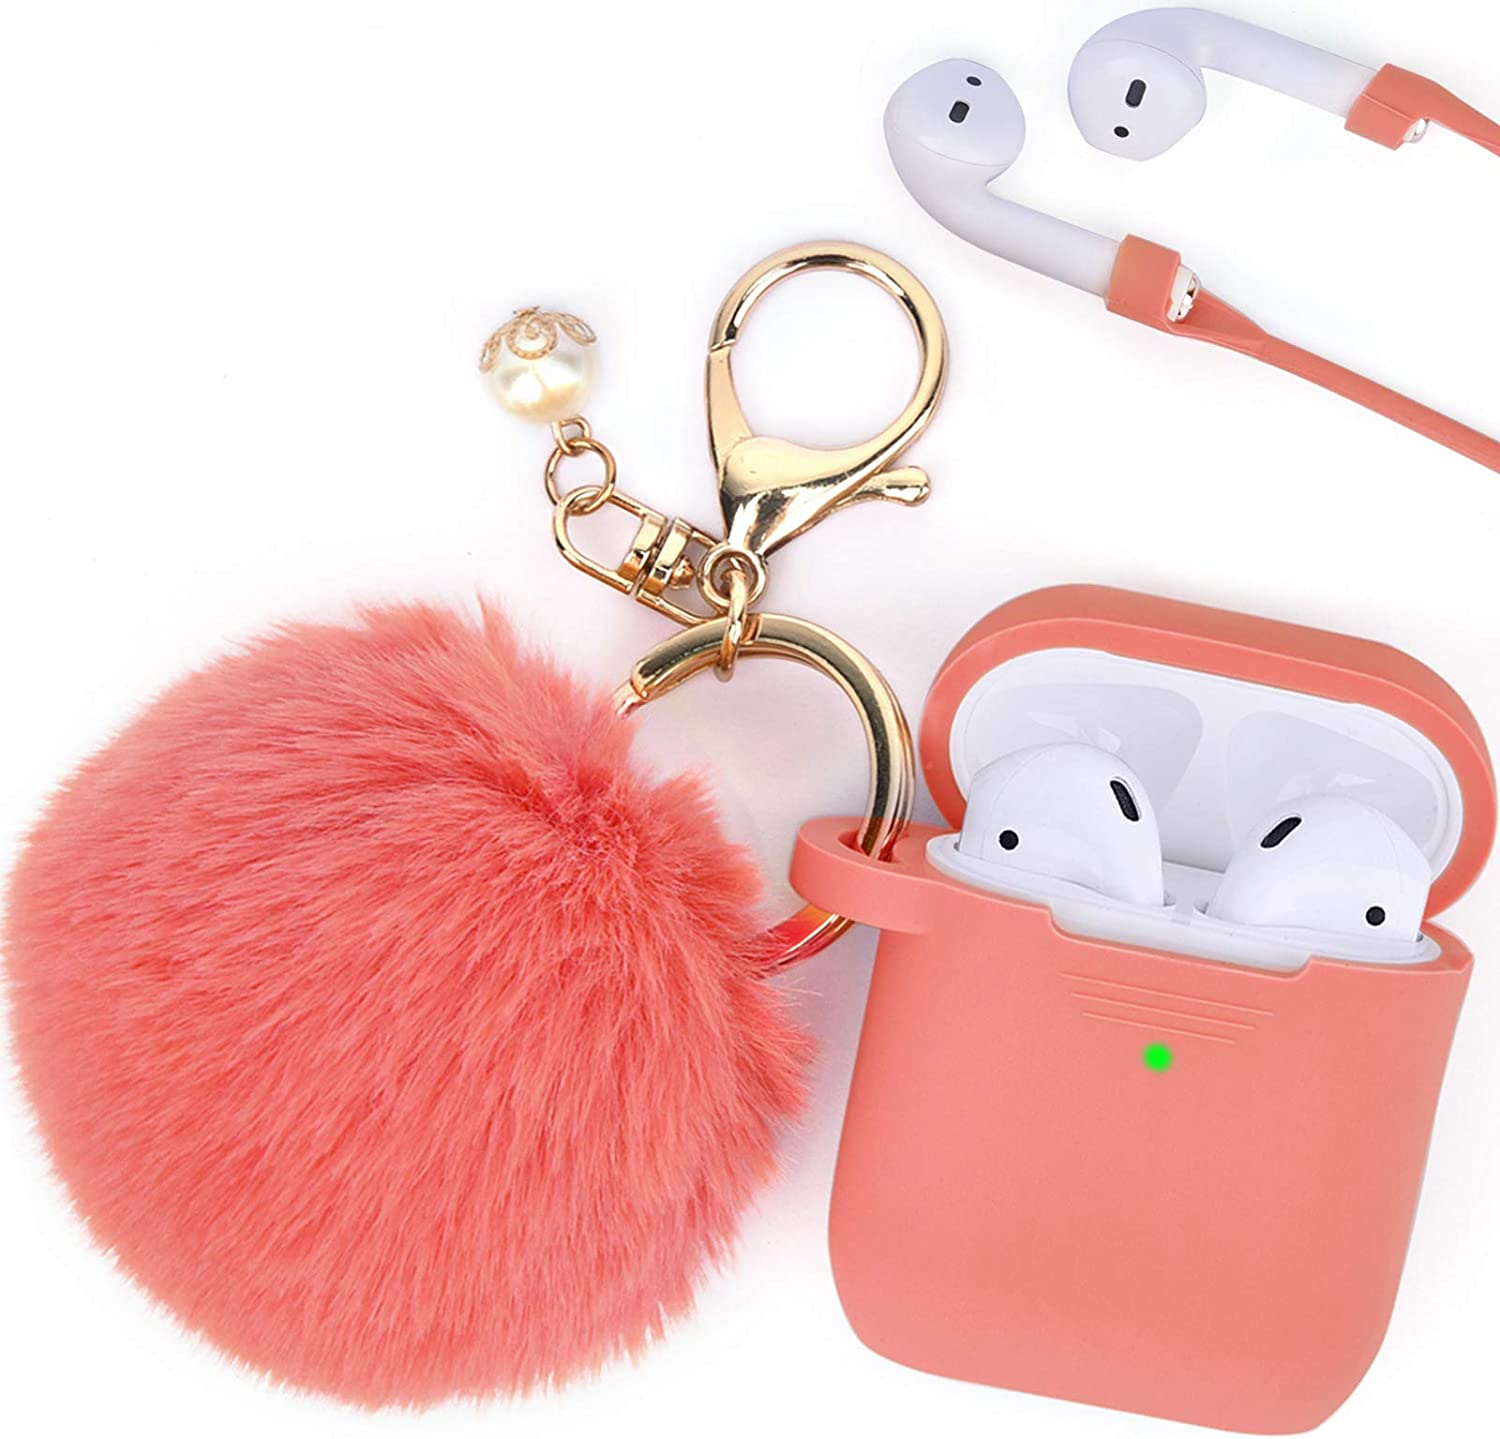 Filoto Case for Airpods , Airpod Case Cover for Apple Airpods 2&1 Charging Case, Cute Air Pods Silicone Protective Accessories Cases/Keychain/Pompom/Strap, Best Gift for Girls and Women, Living Coral